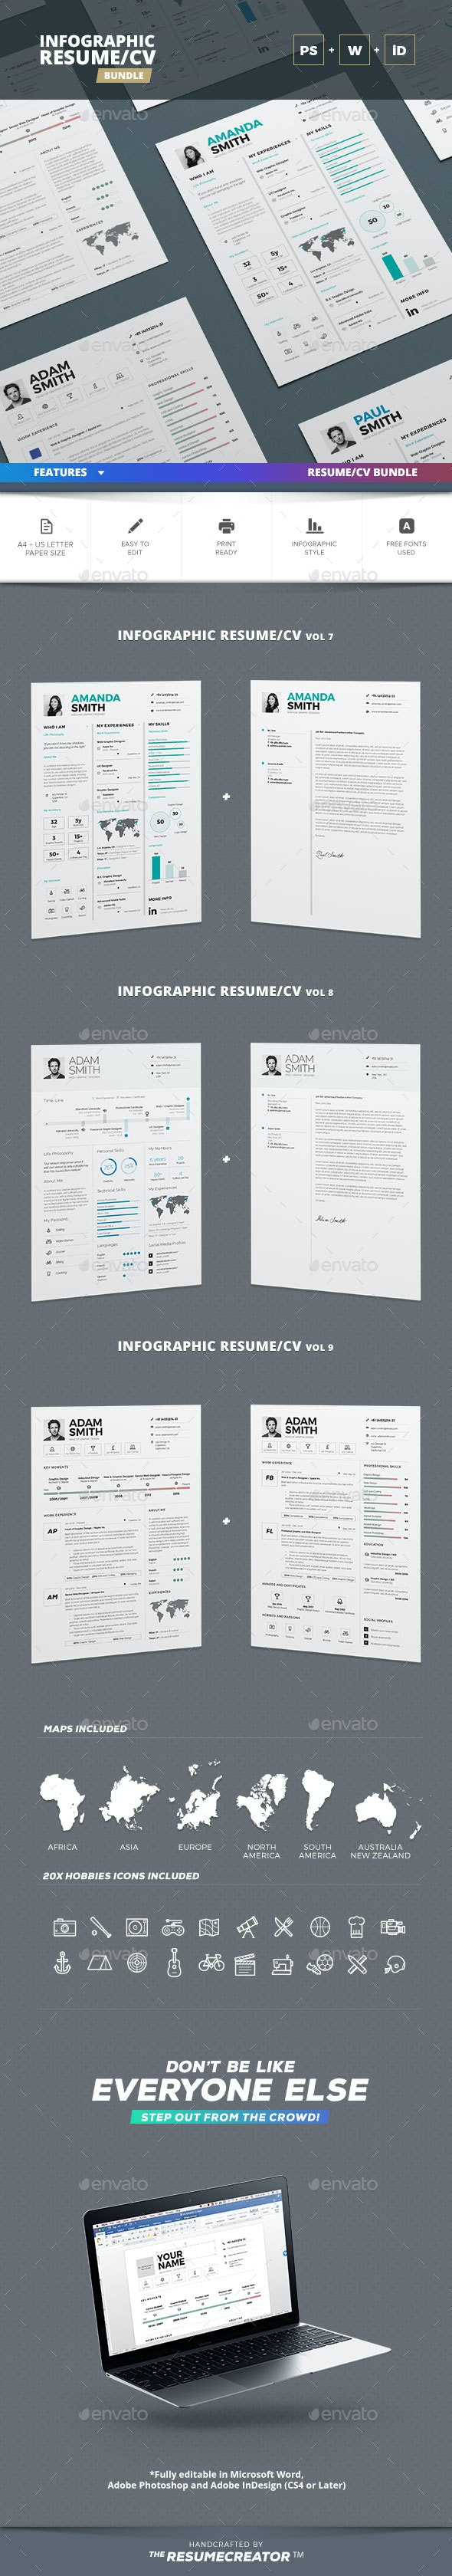 Infographic Resume/Cv Bundle Volume 2 - Resumes Stationery